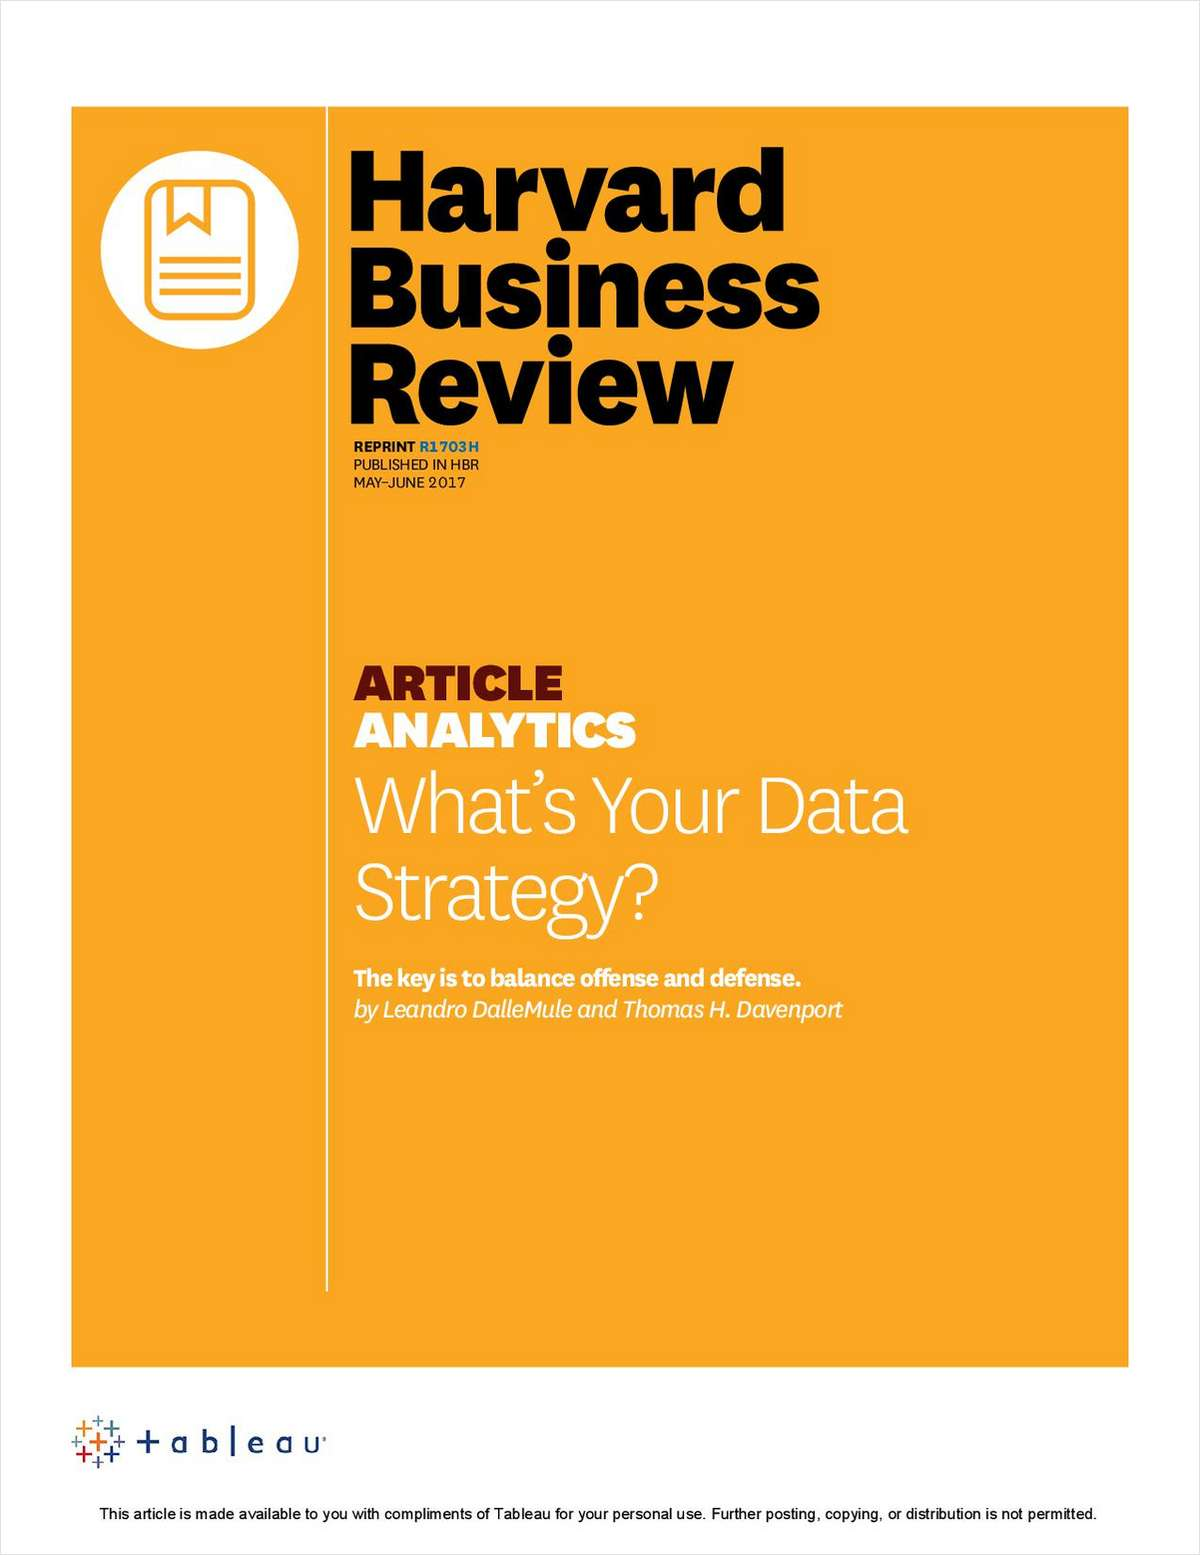 What's Your Data Strategy